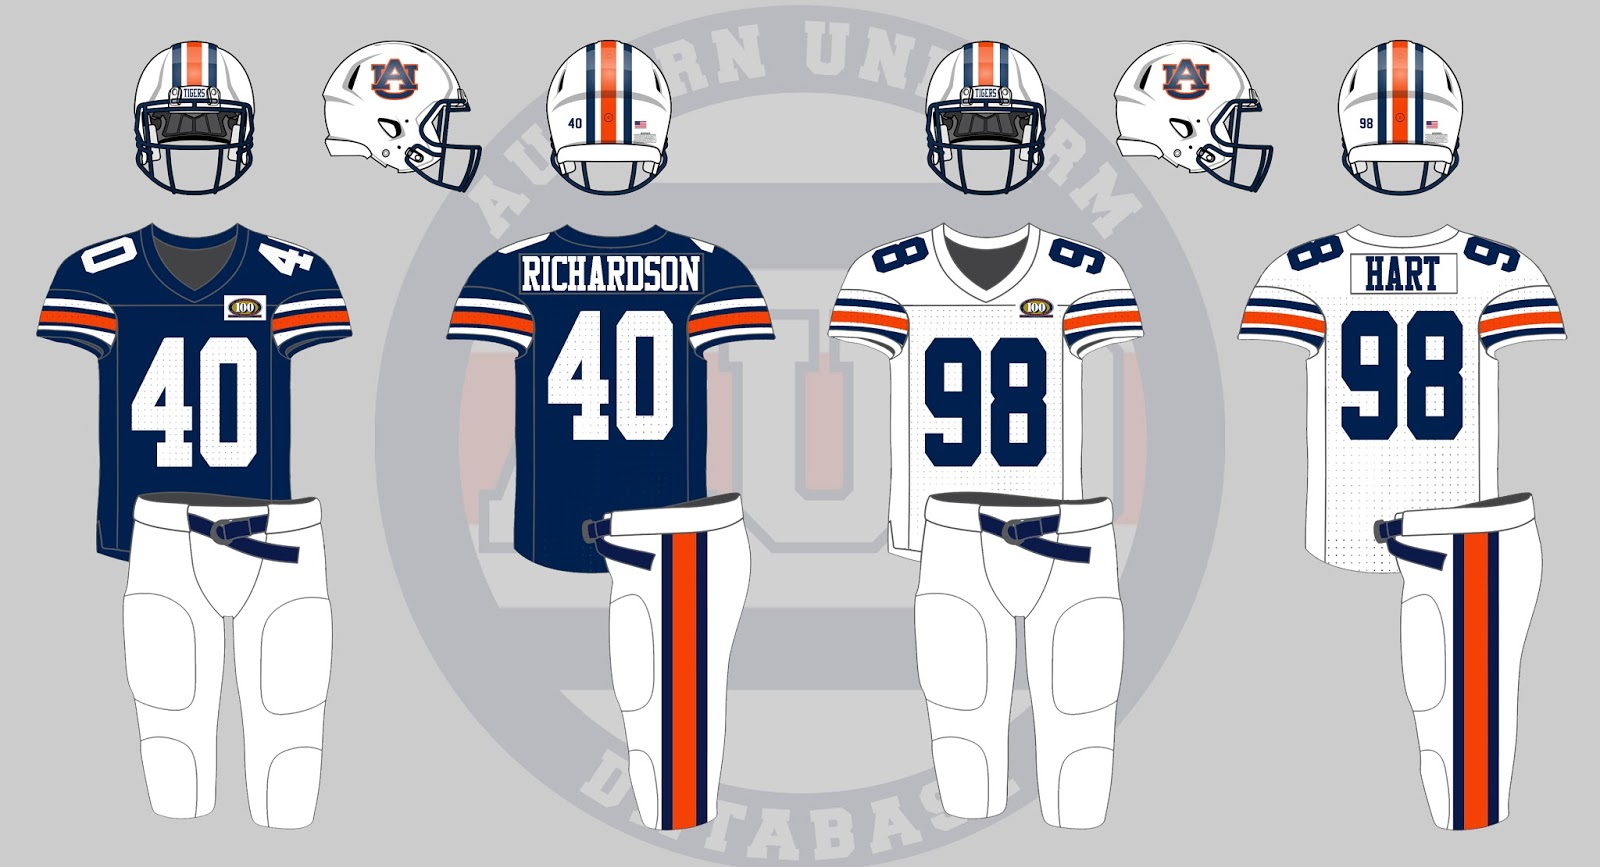 The 1992-93 season marked the 100th anniversary of Auburn football 8ac0d4300